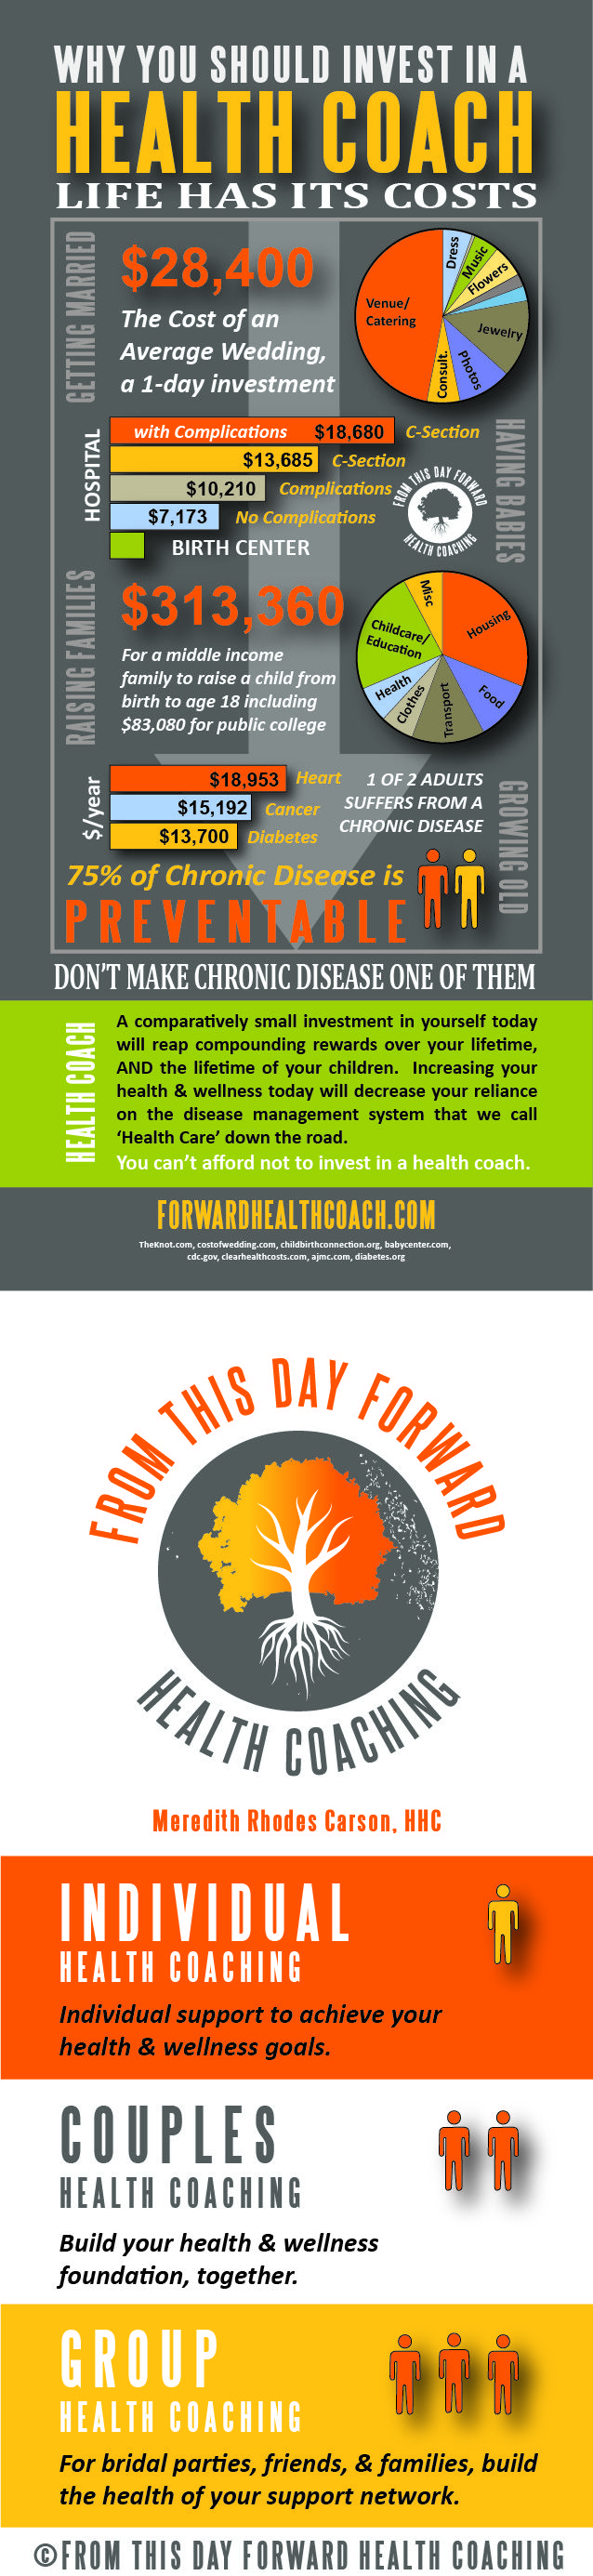 Why You Need a Health Coach | From This Day Forward Health Coaching. www.coachingporta...